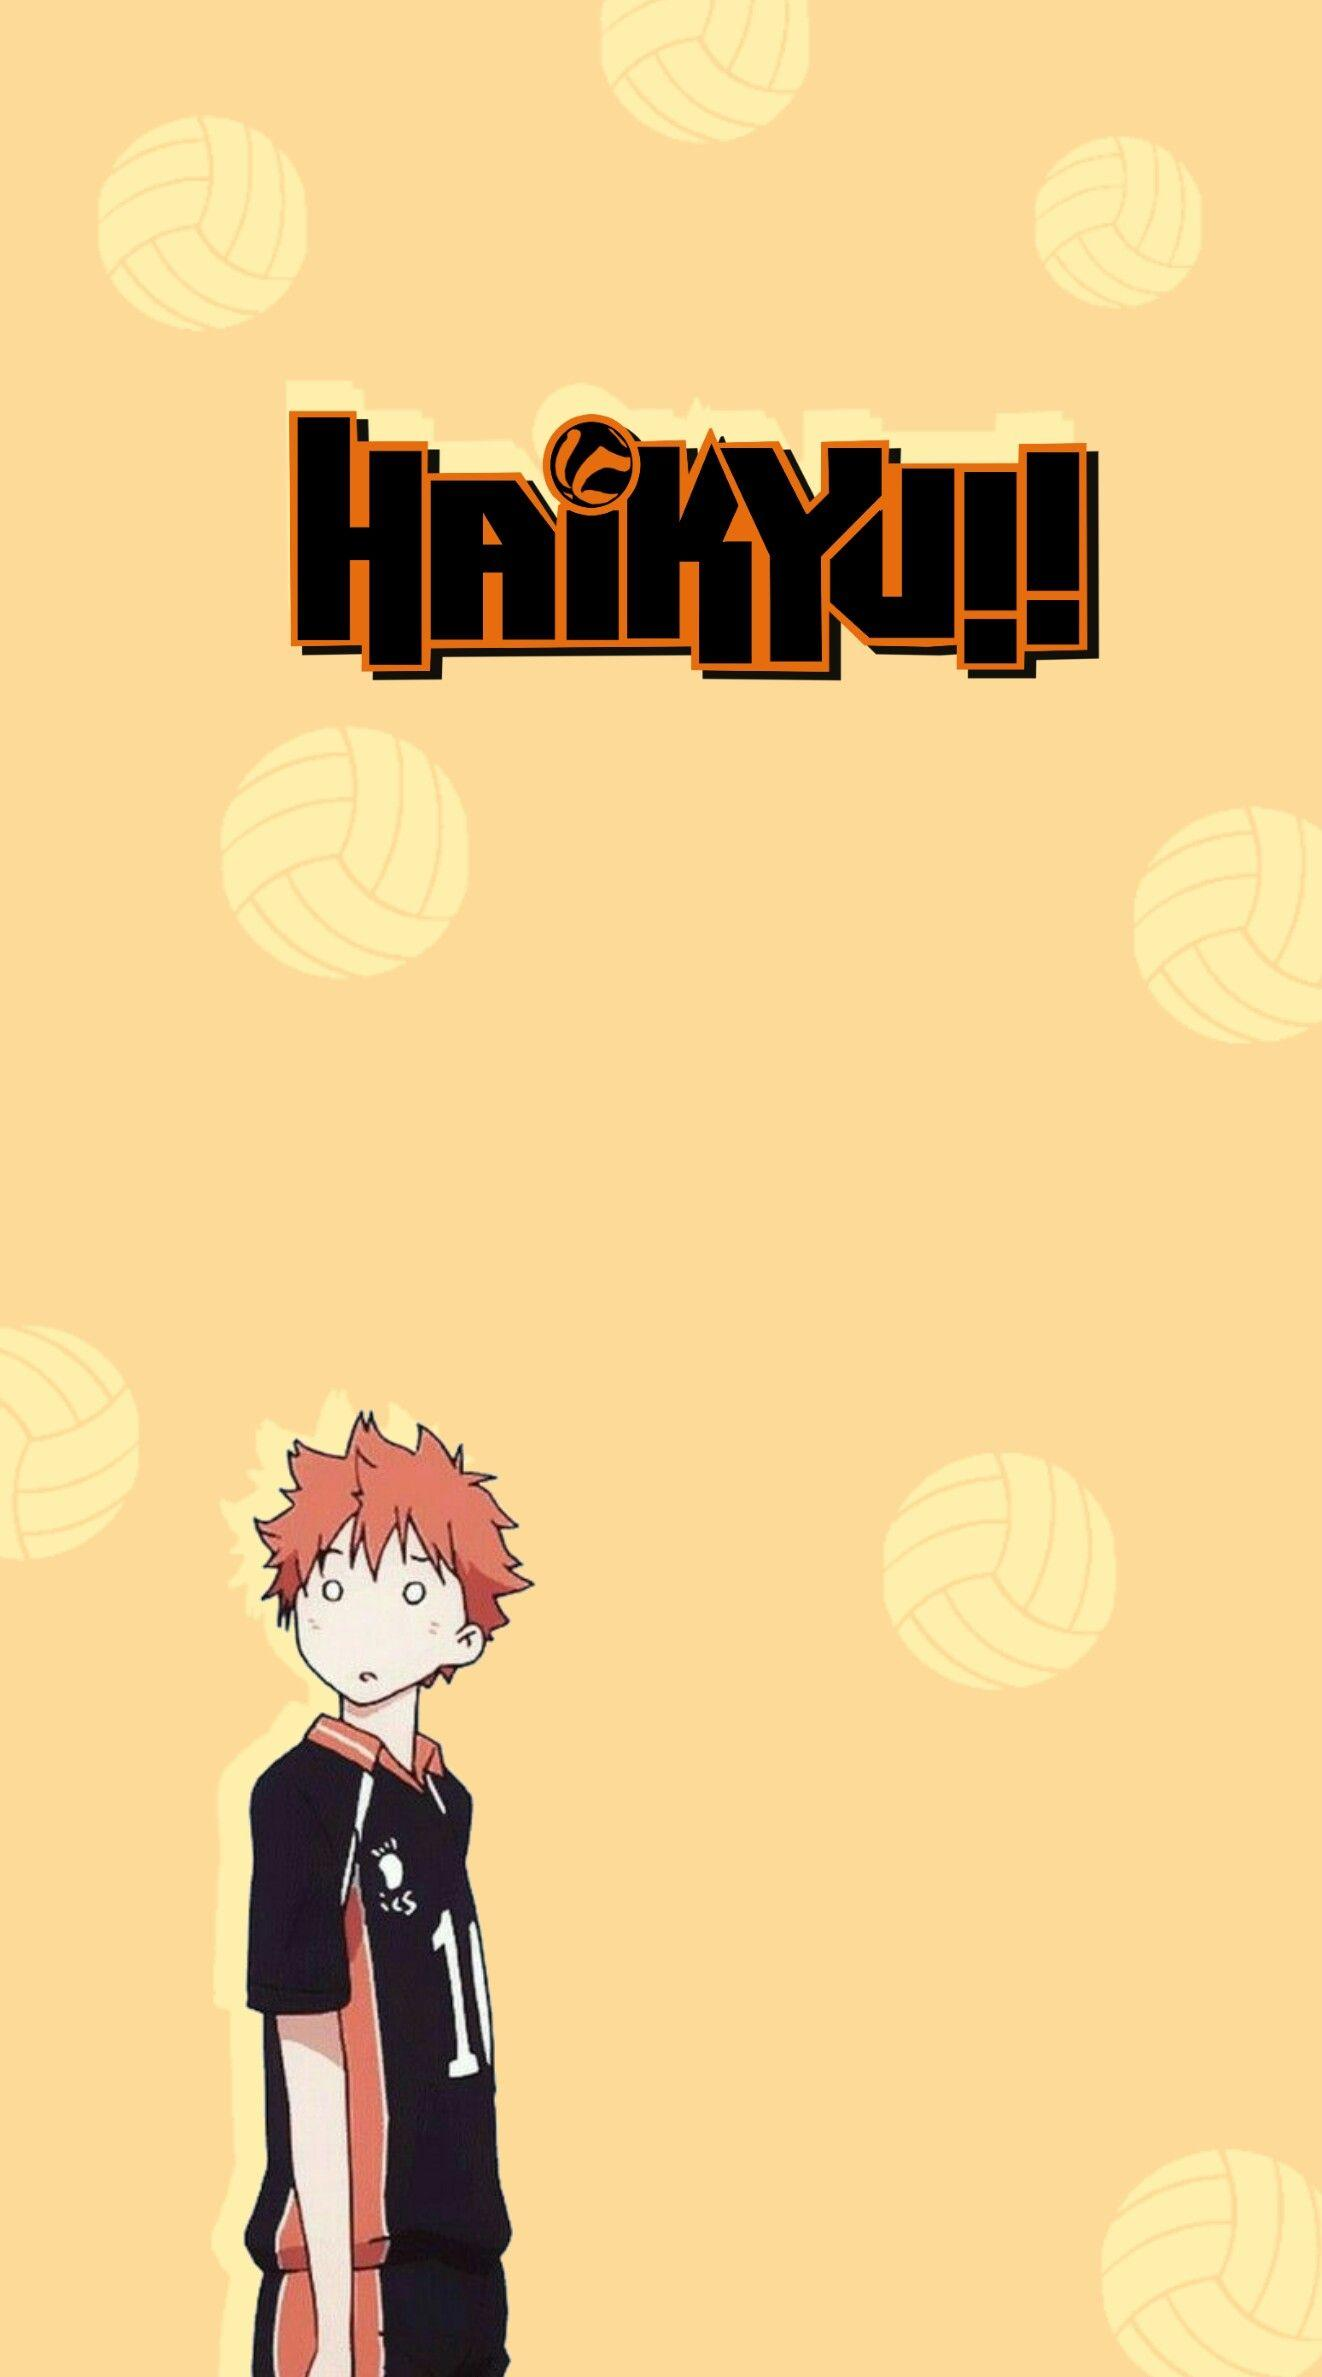 Haikyuu wallpapers